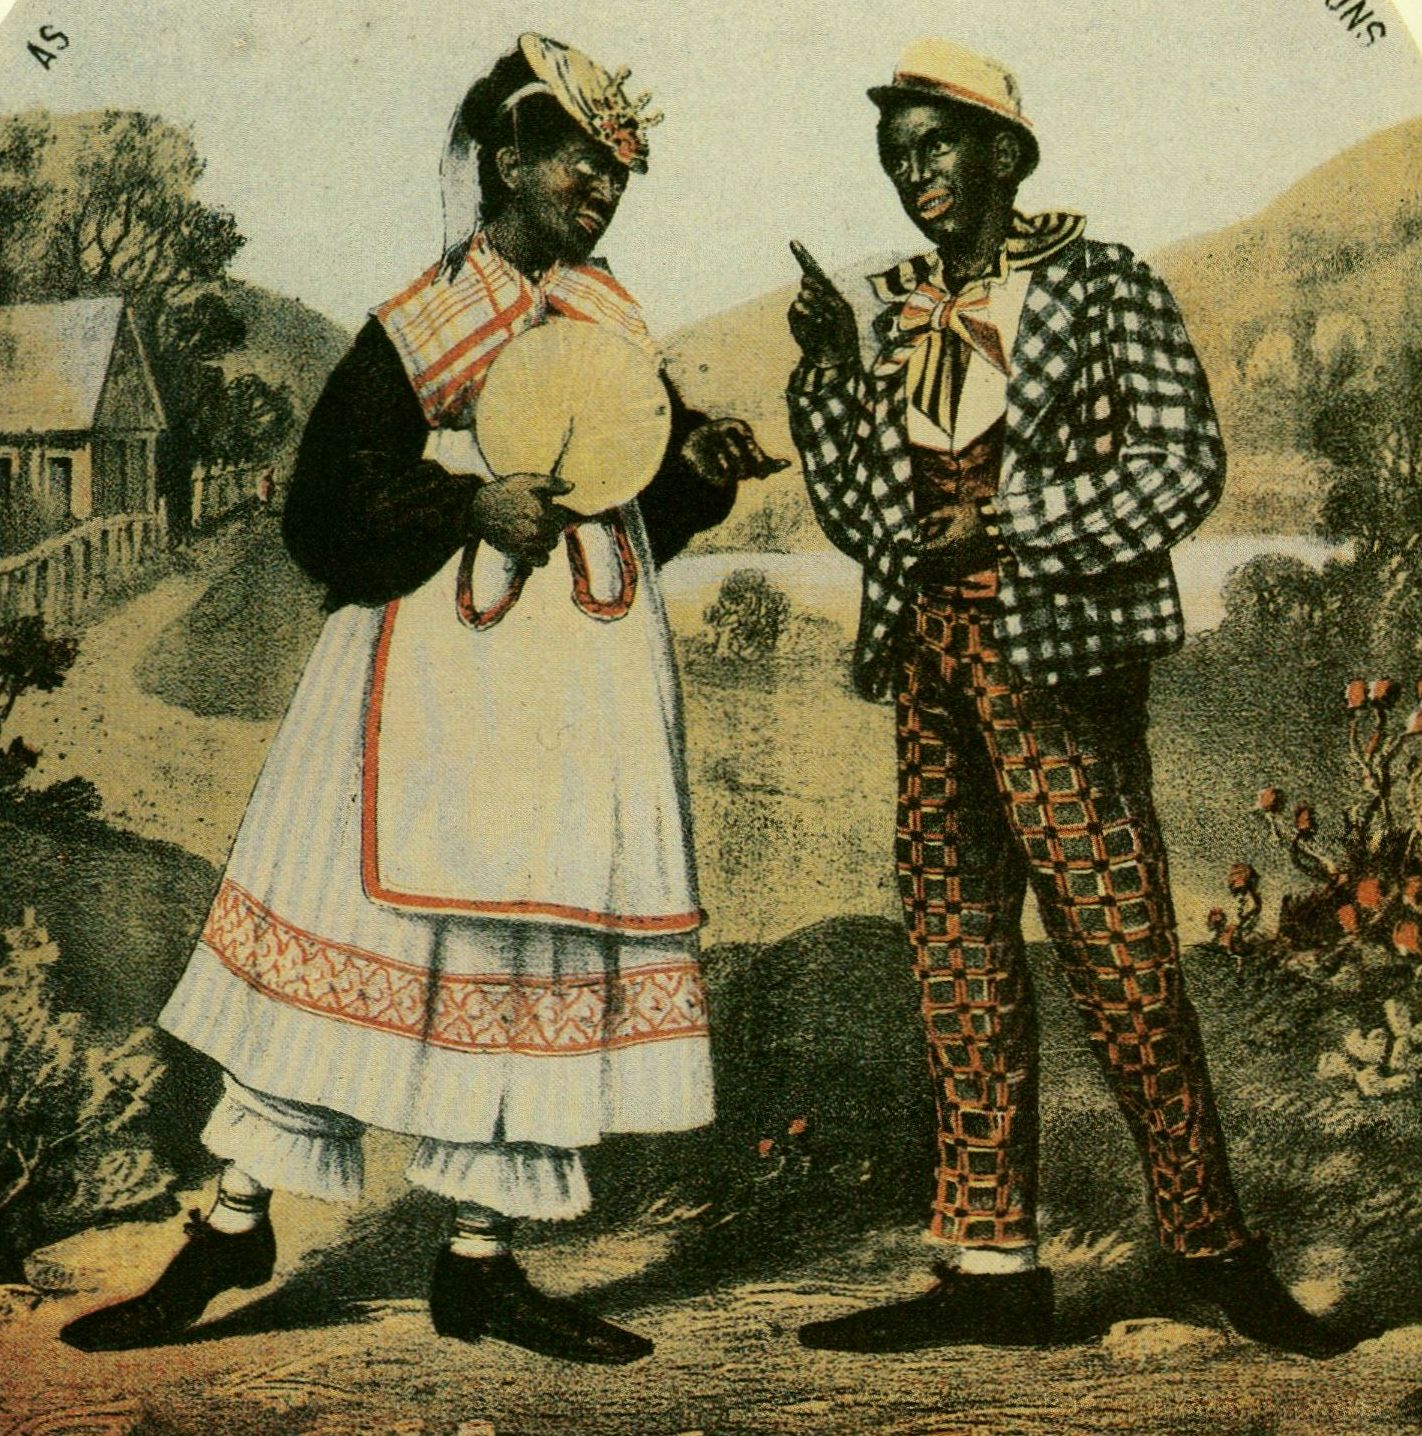 The courting couple was another minstrel staple, with the girl typically played by a man. Such lovers were usually lampooned less savagely than the dandy, since their carefree plantation world represented little threat to city audiences.